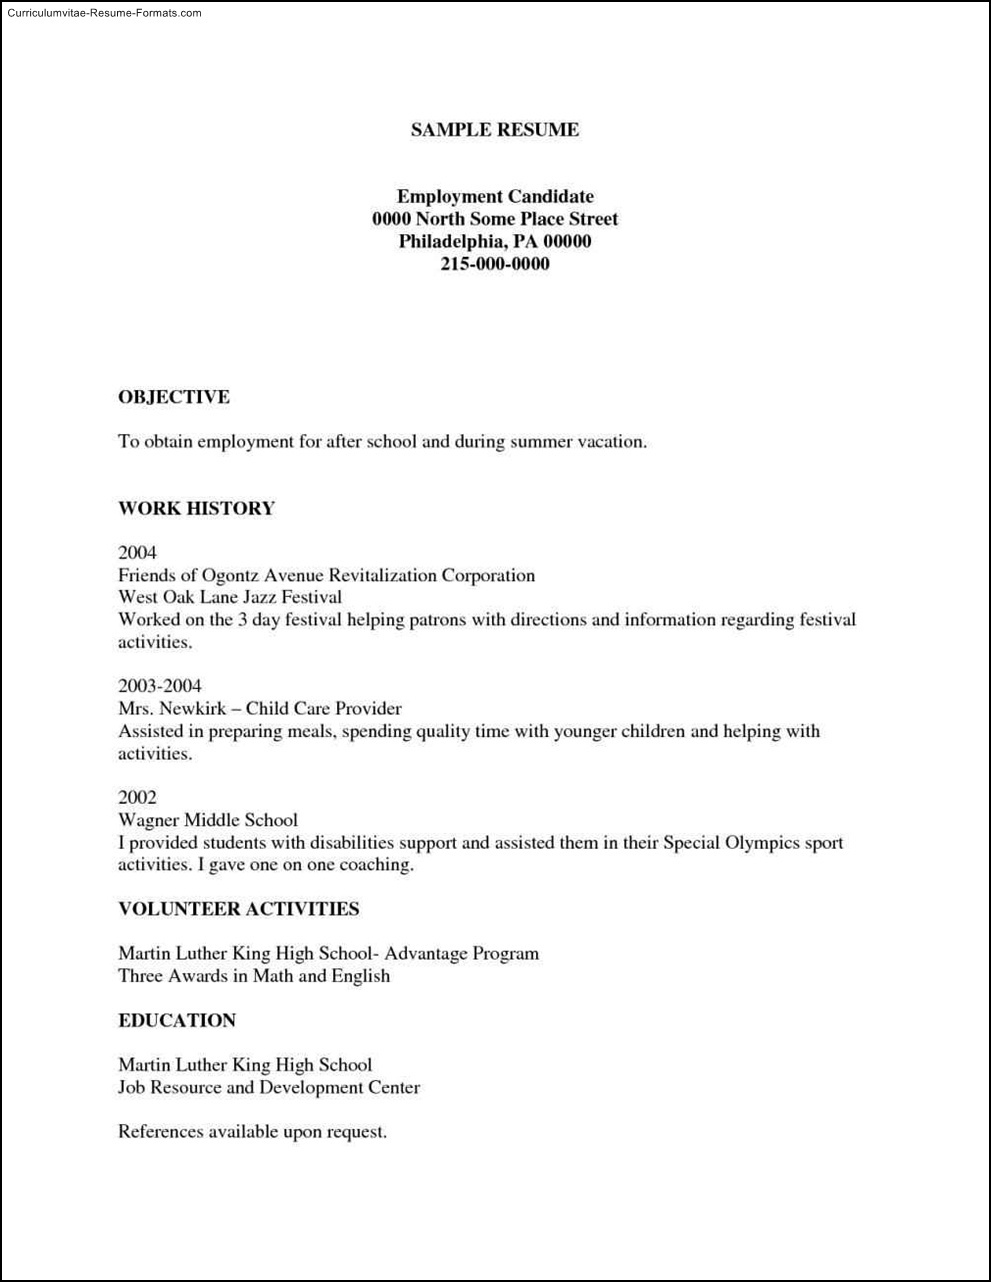 Word Resume Template 30 Awesome Printable Resume Examples Resumes - Free Printable Resume